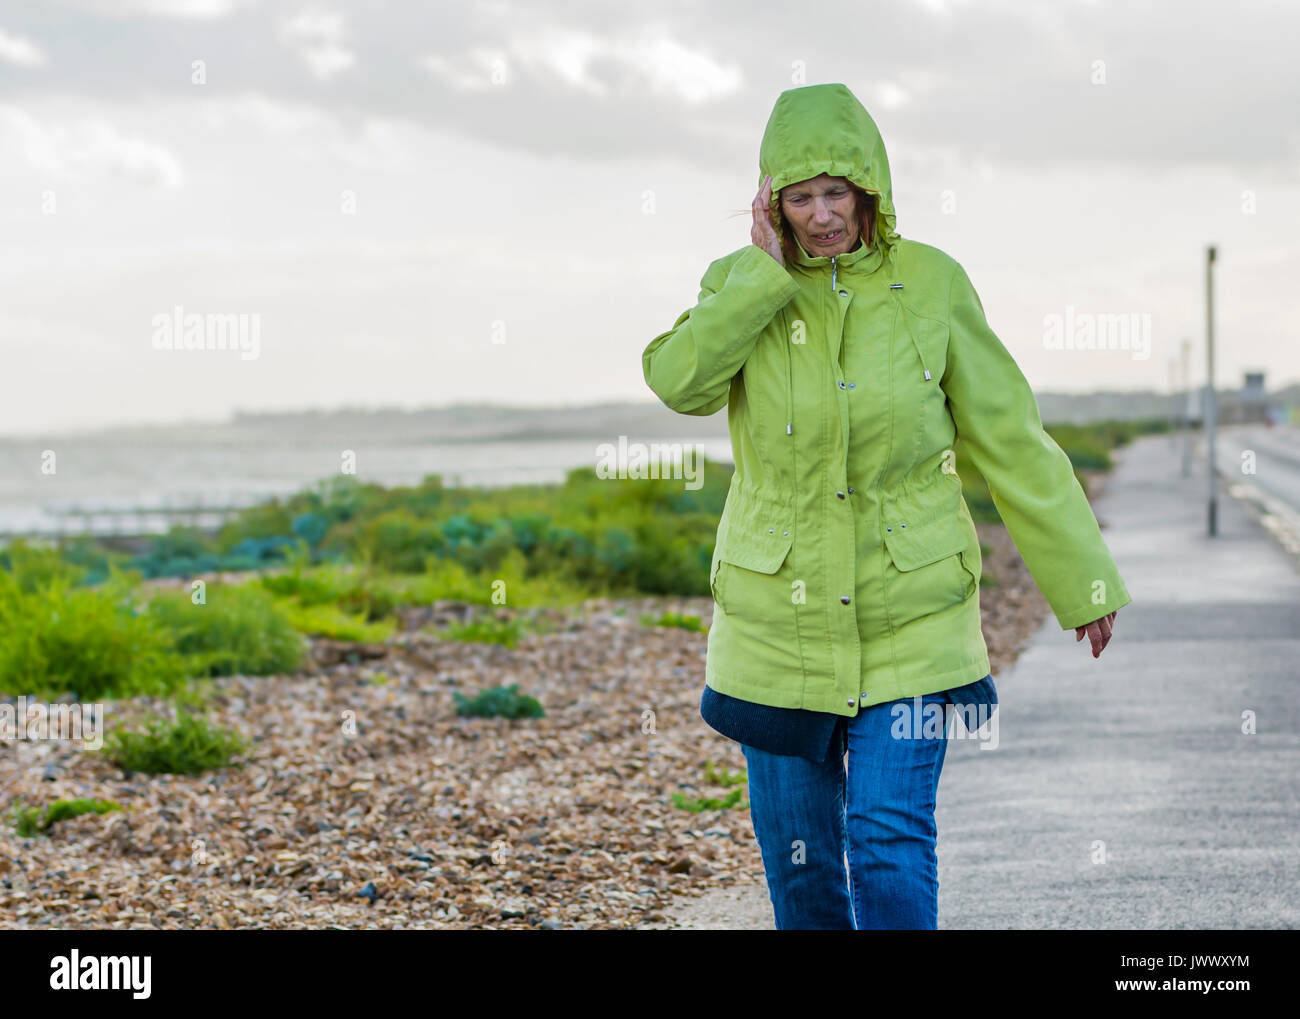 Elderly woman walking along a seafront road in cloudy wet and windy weather, keeping her ears warm. - Stock Image